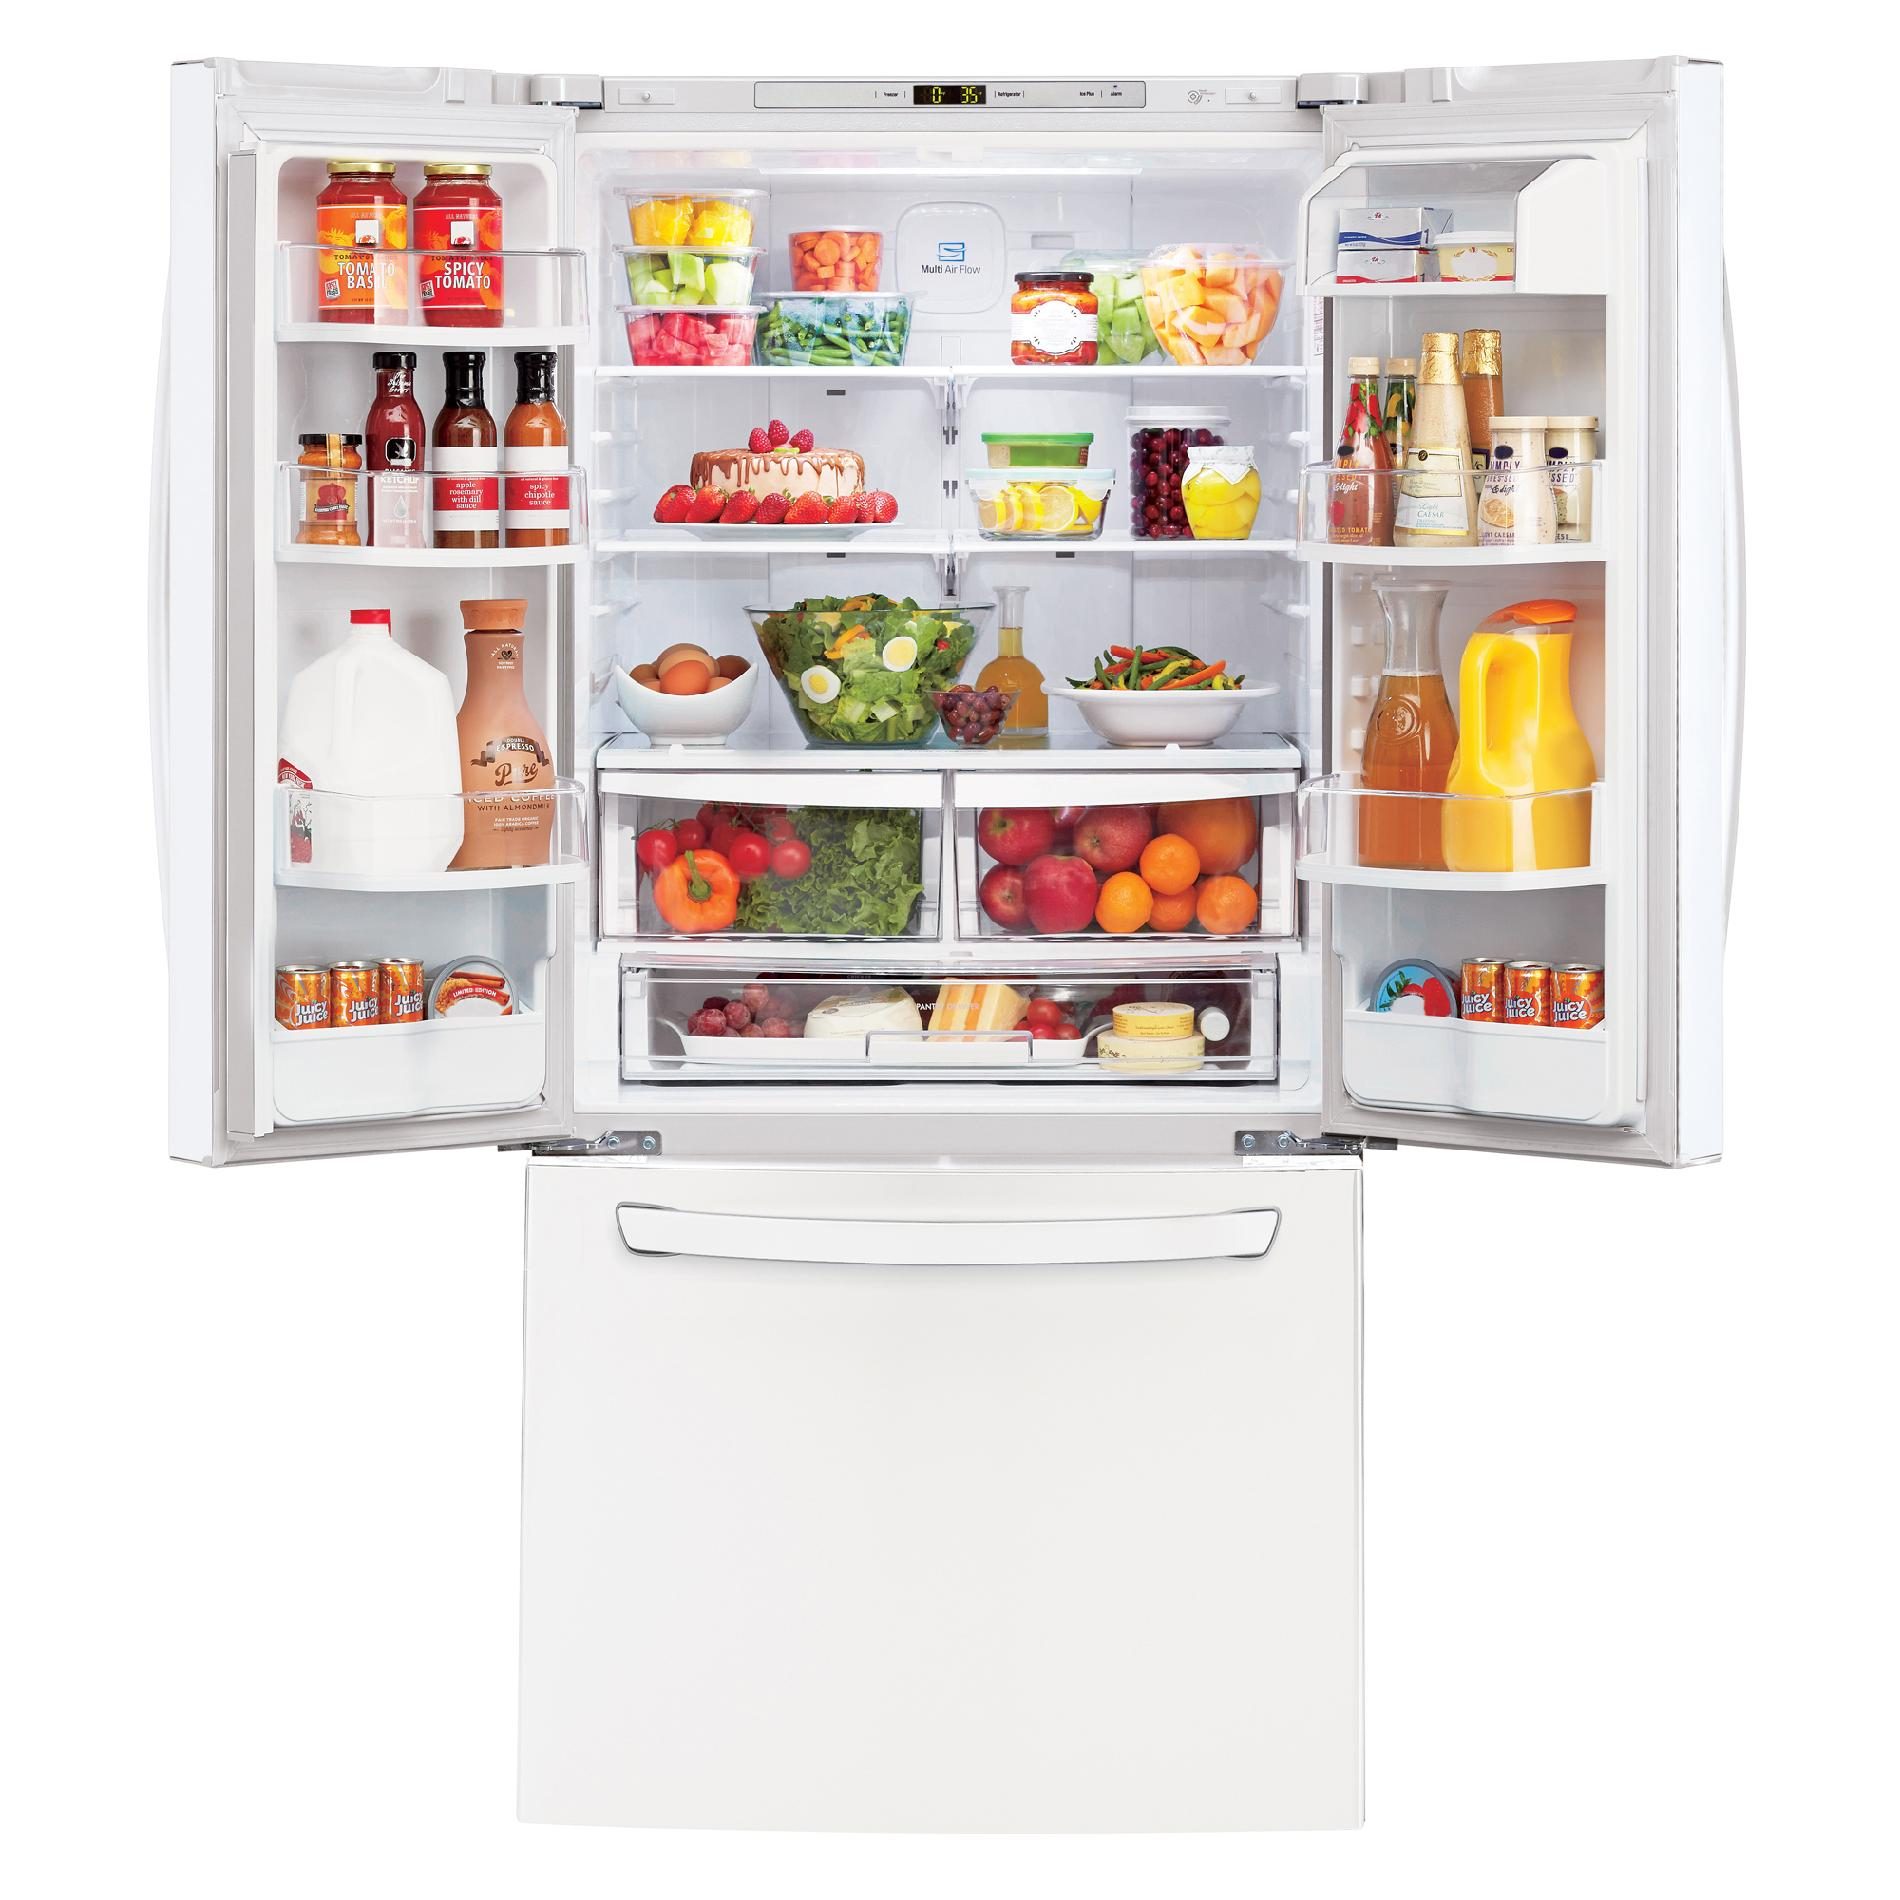 LG 22 cu. ft. French Door Bottom-Freezer Refrigerator